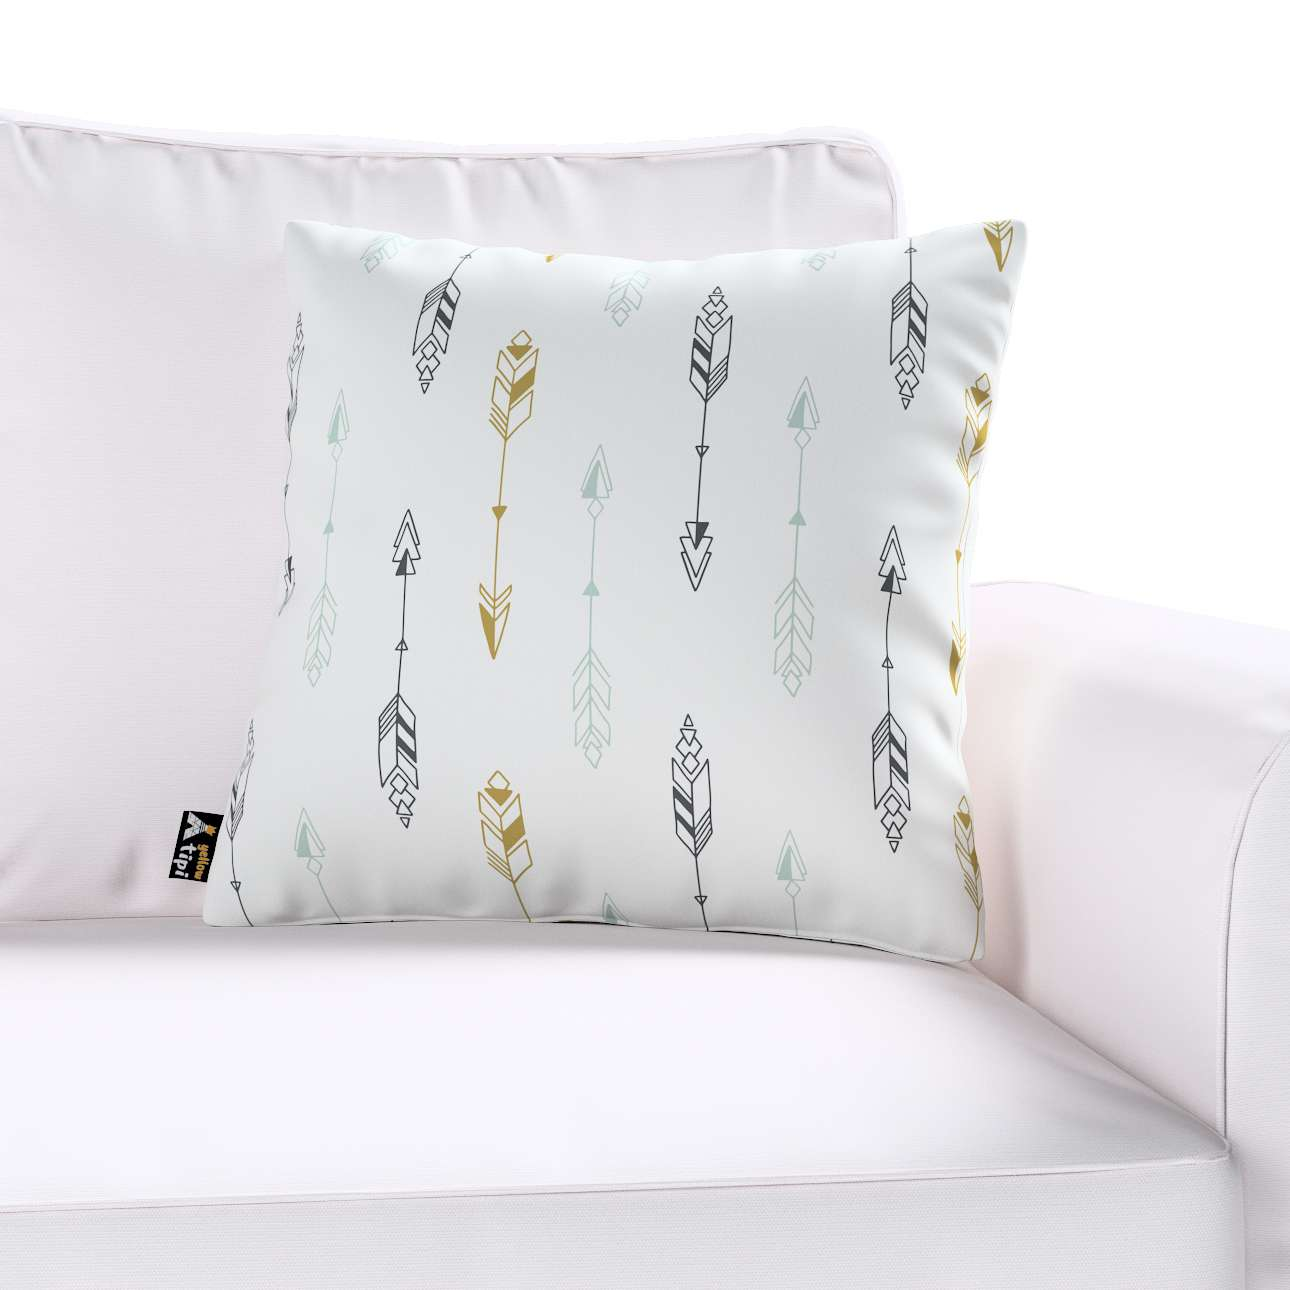 Milly cushion cover in collection Magic Collection, fabric: 500-07